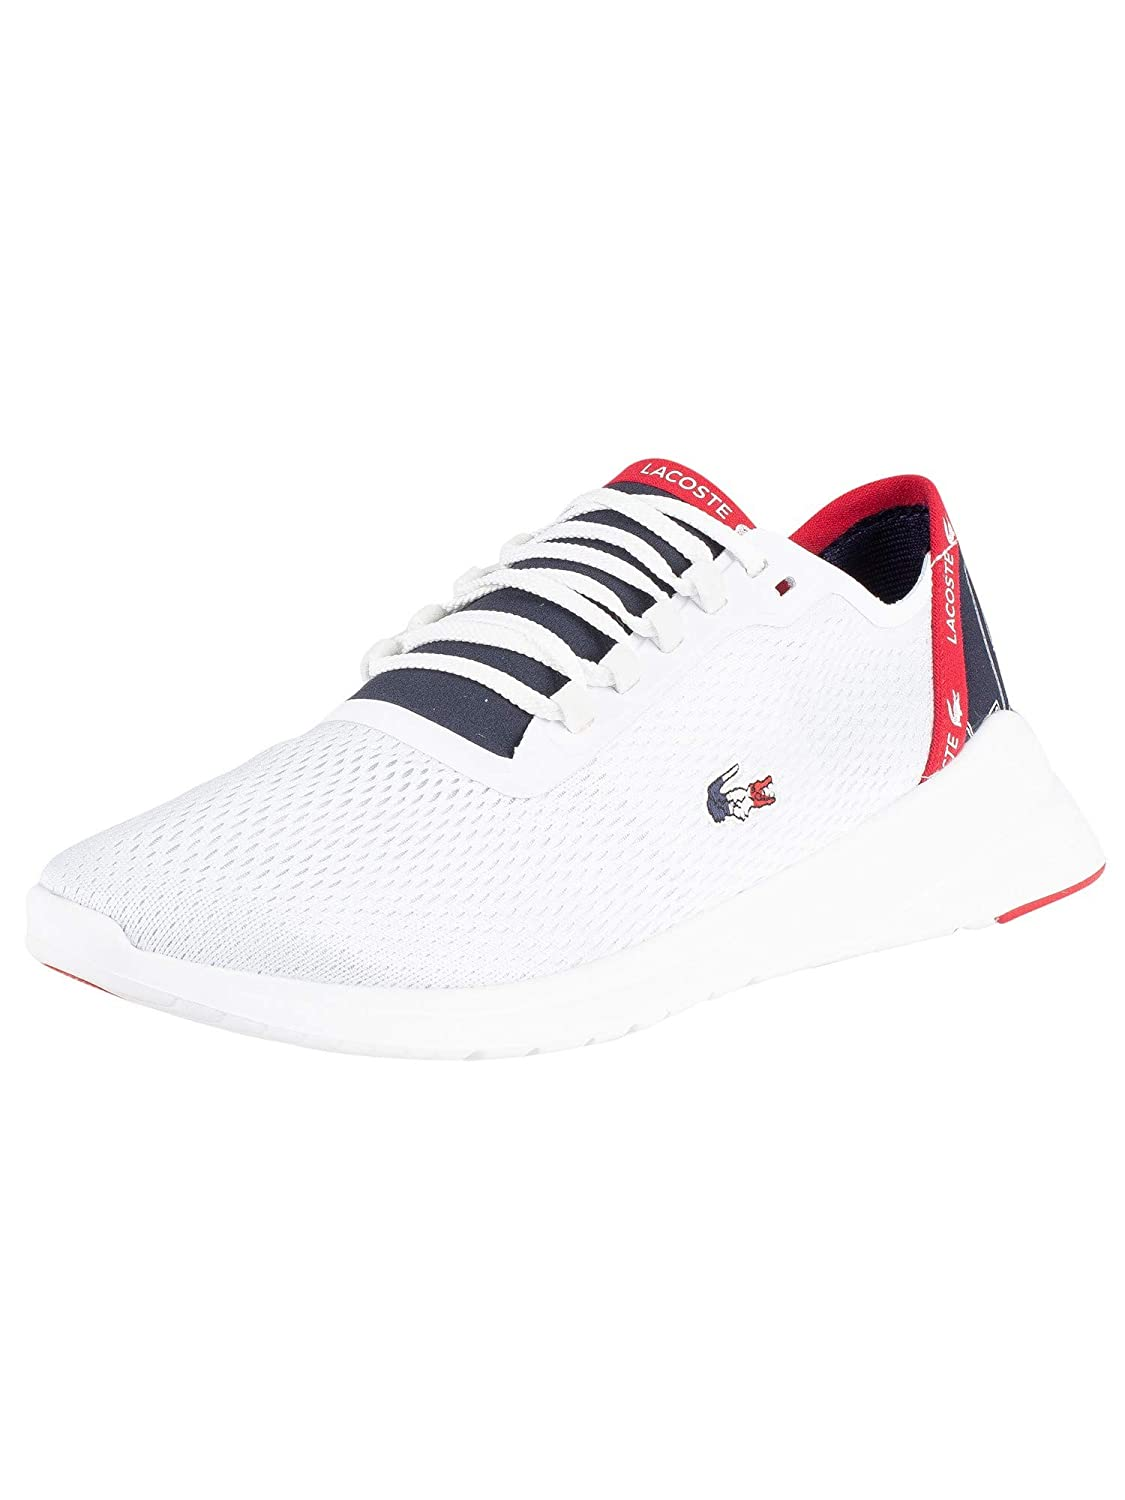 f3d2b670104aa Amazon.com: Lacoste Men's LT Fit 119 5 SMA Trainers, White: Clothing